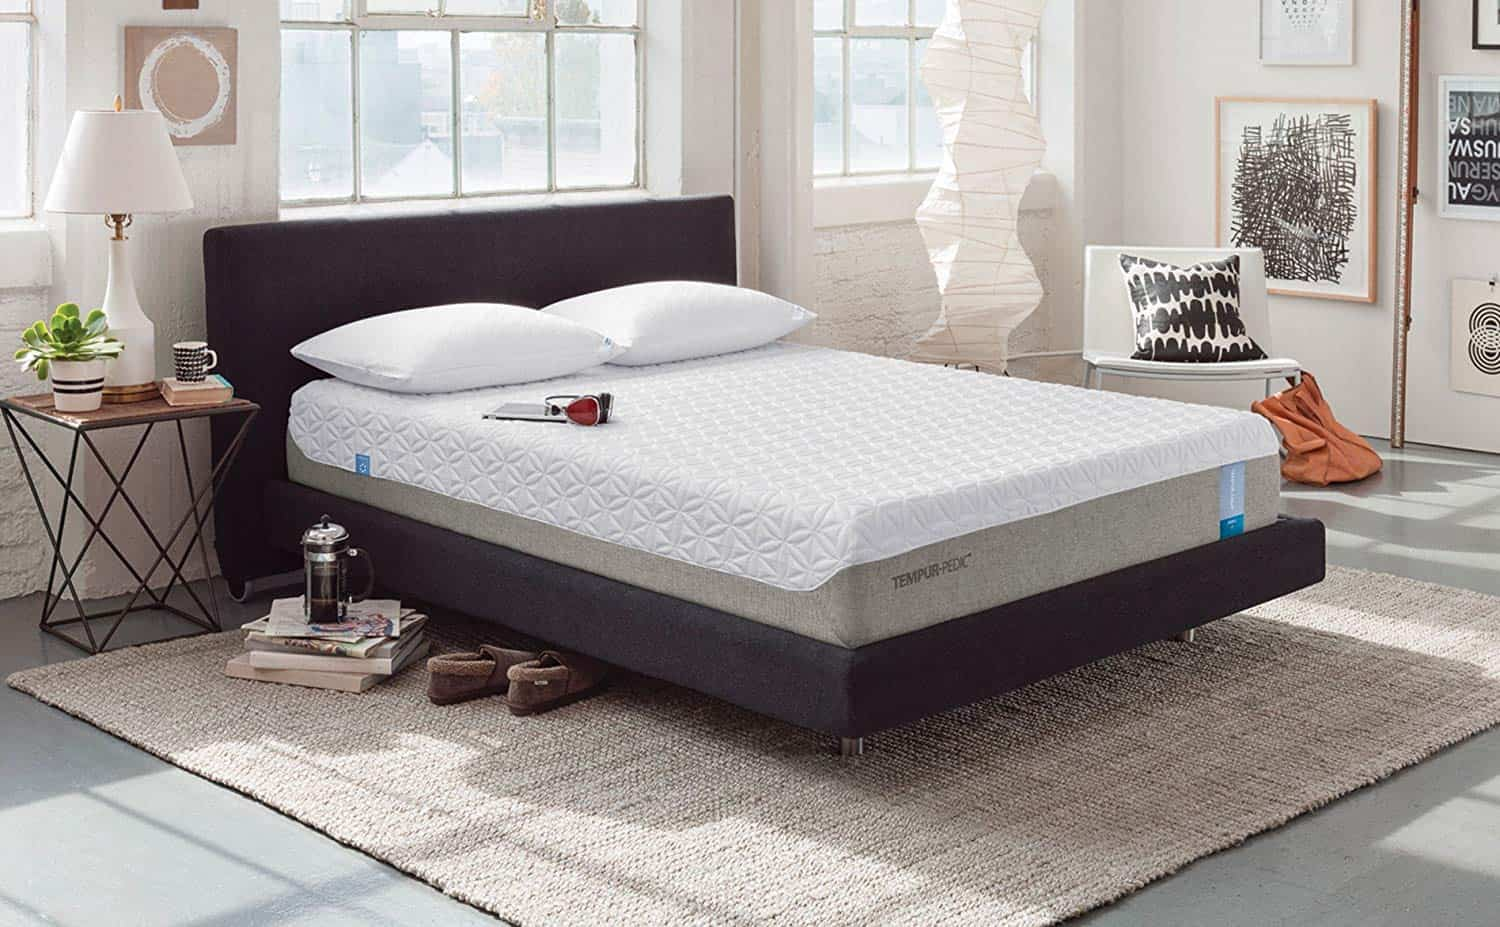 Tempur Pedic Vs Bob O Pedic Mattresses Reviewed Elite Rest